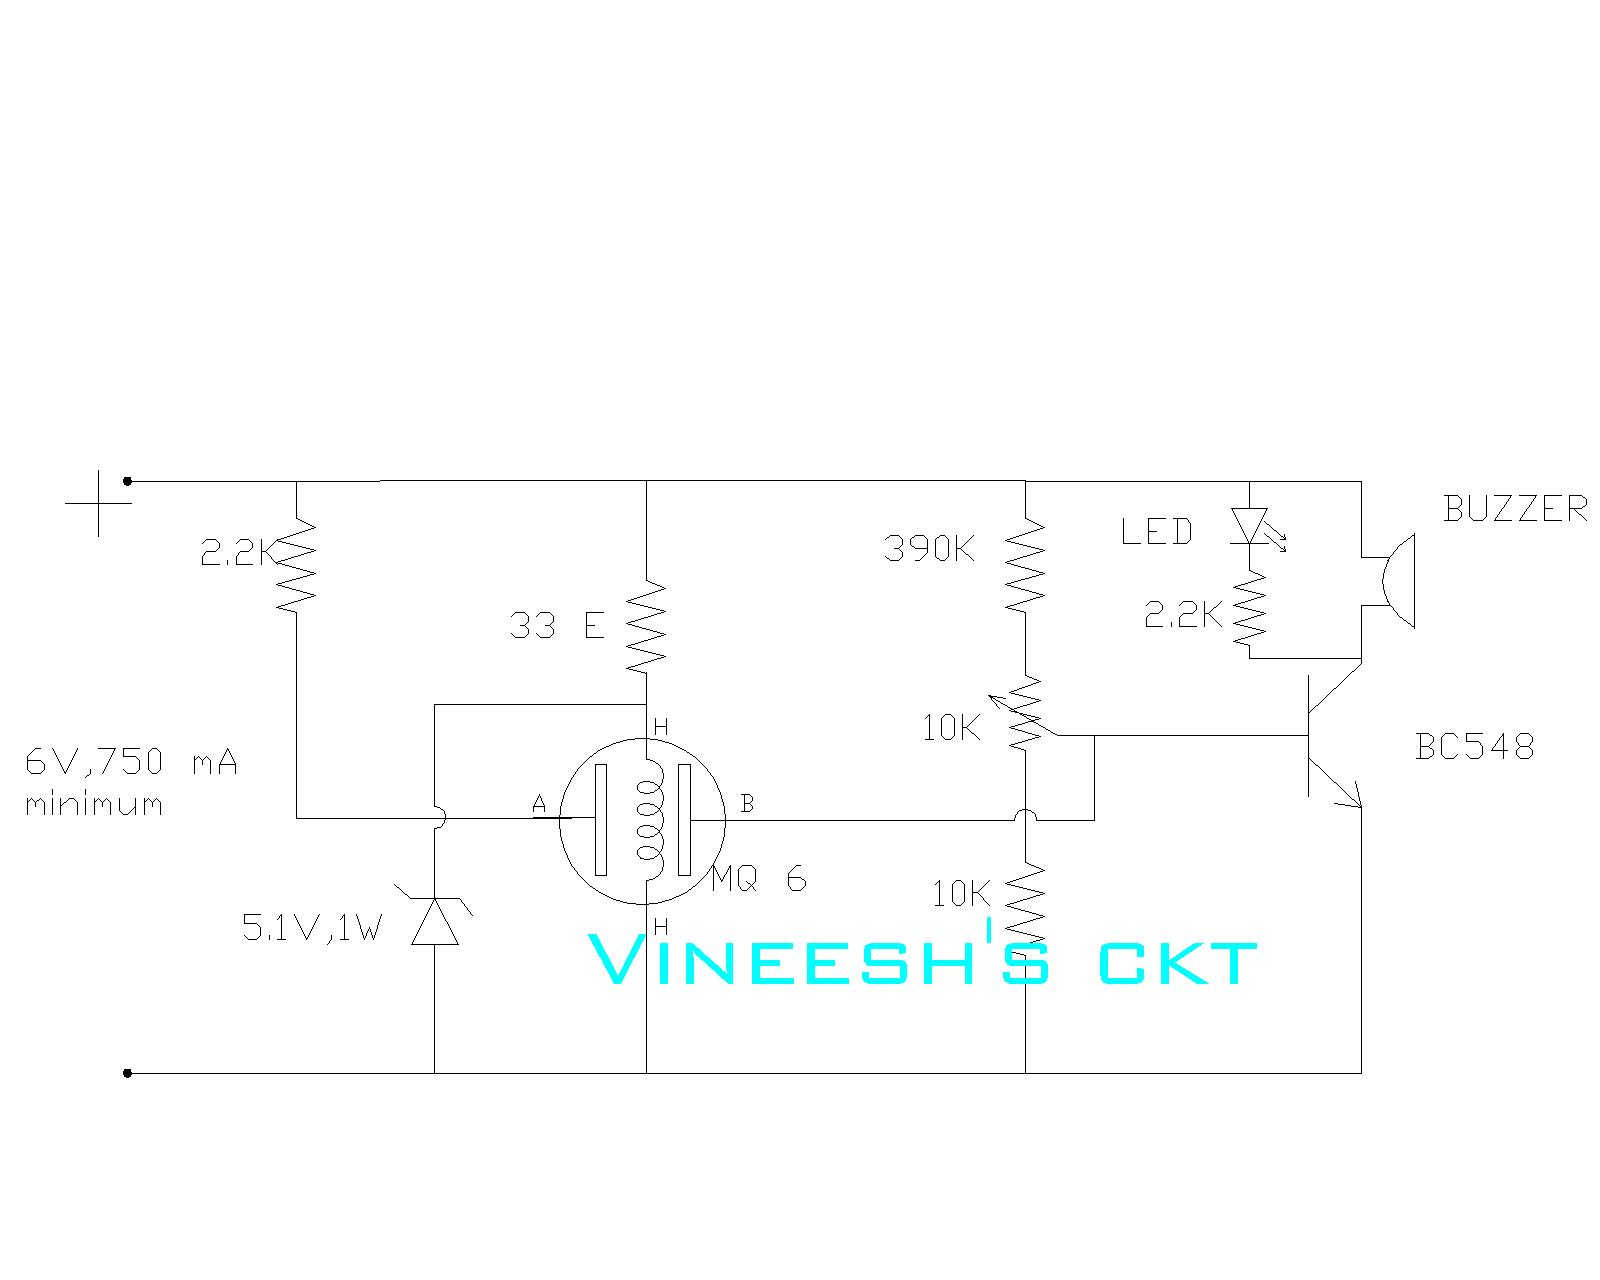 mq 6 circuit diagram wiring diagram HR Diagram mq 6 circuit diagram manual e booksmq 6 circuit diagram